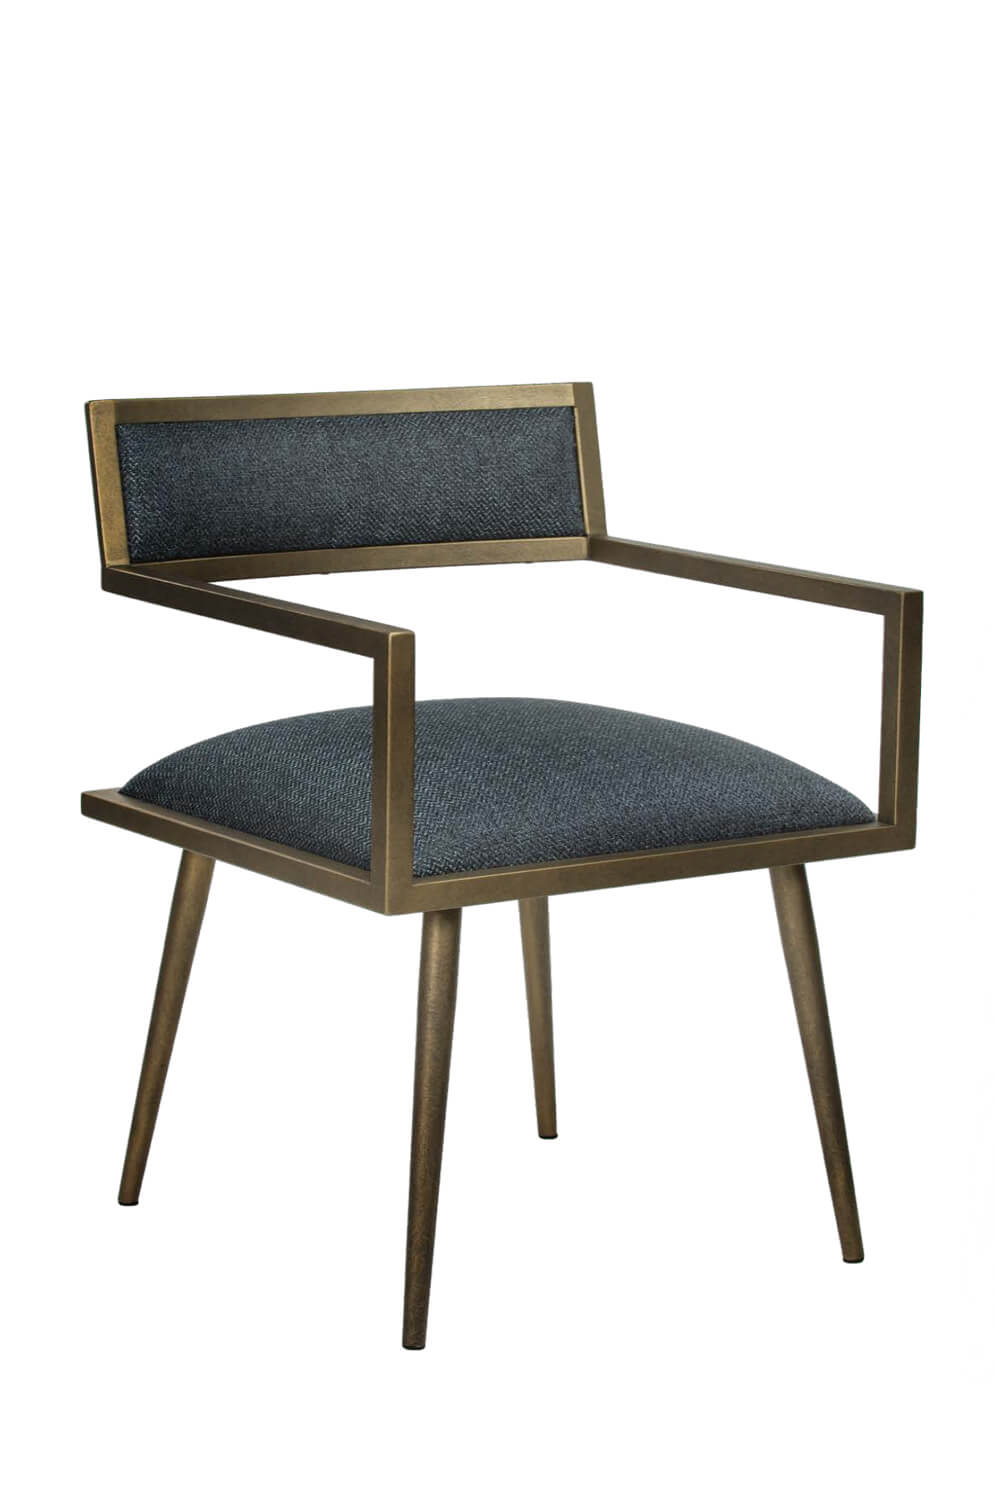 Zara Modern Upholstered Dining Chair